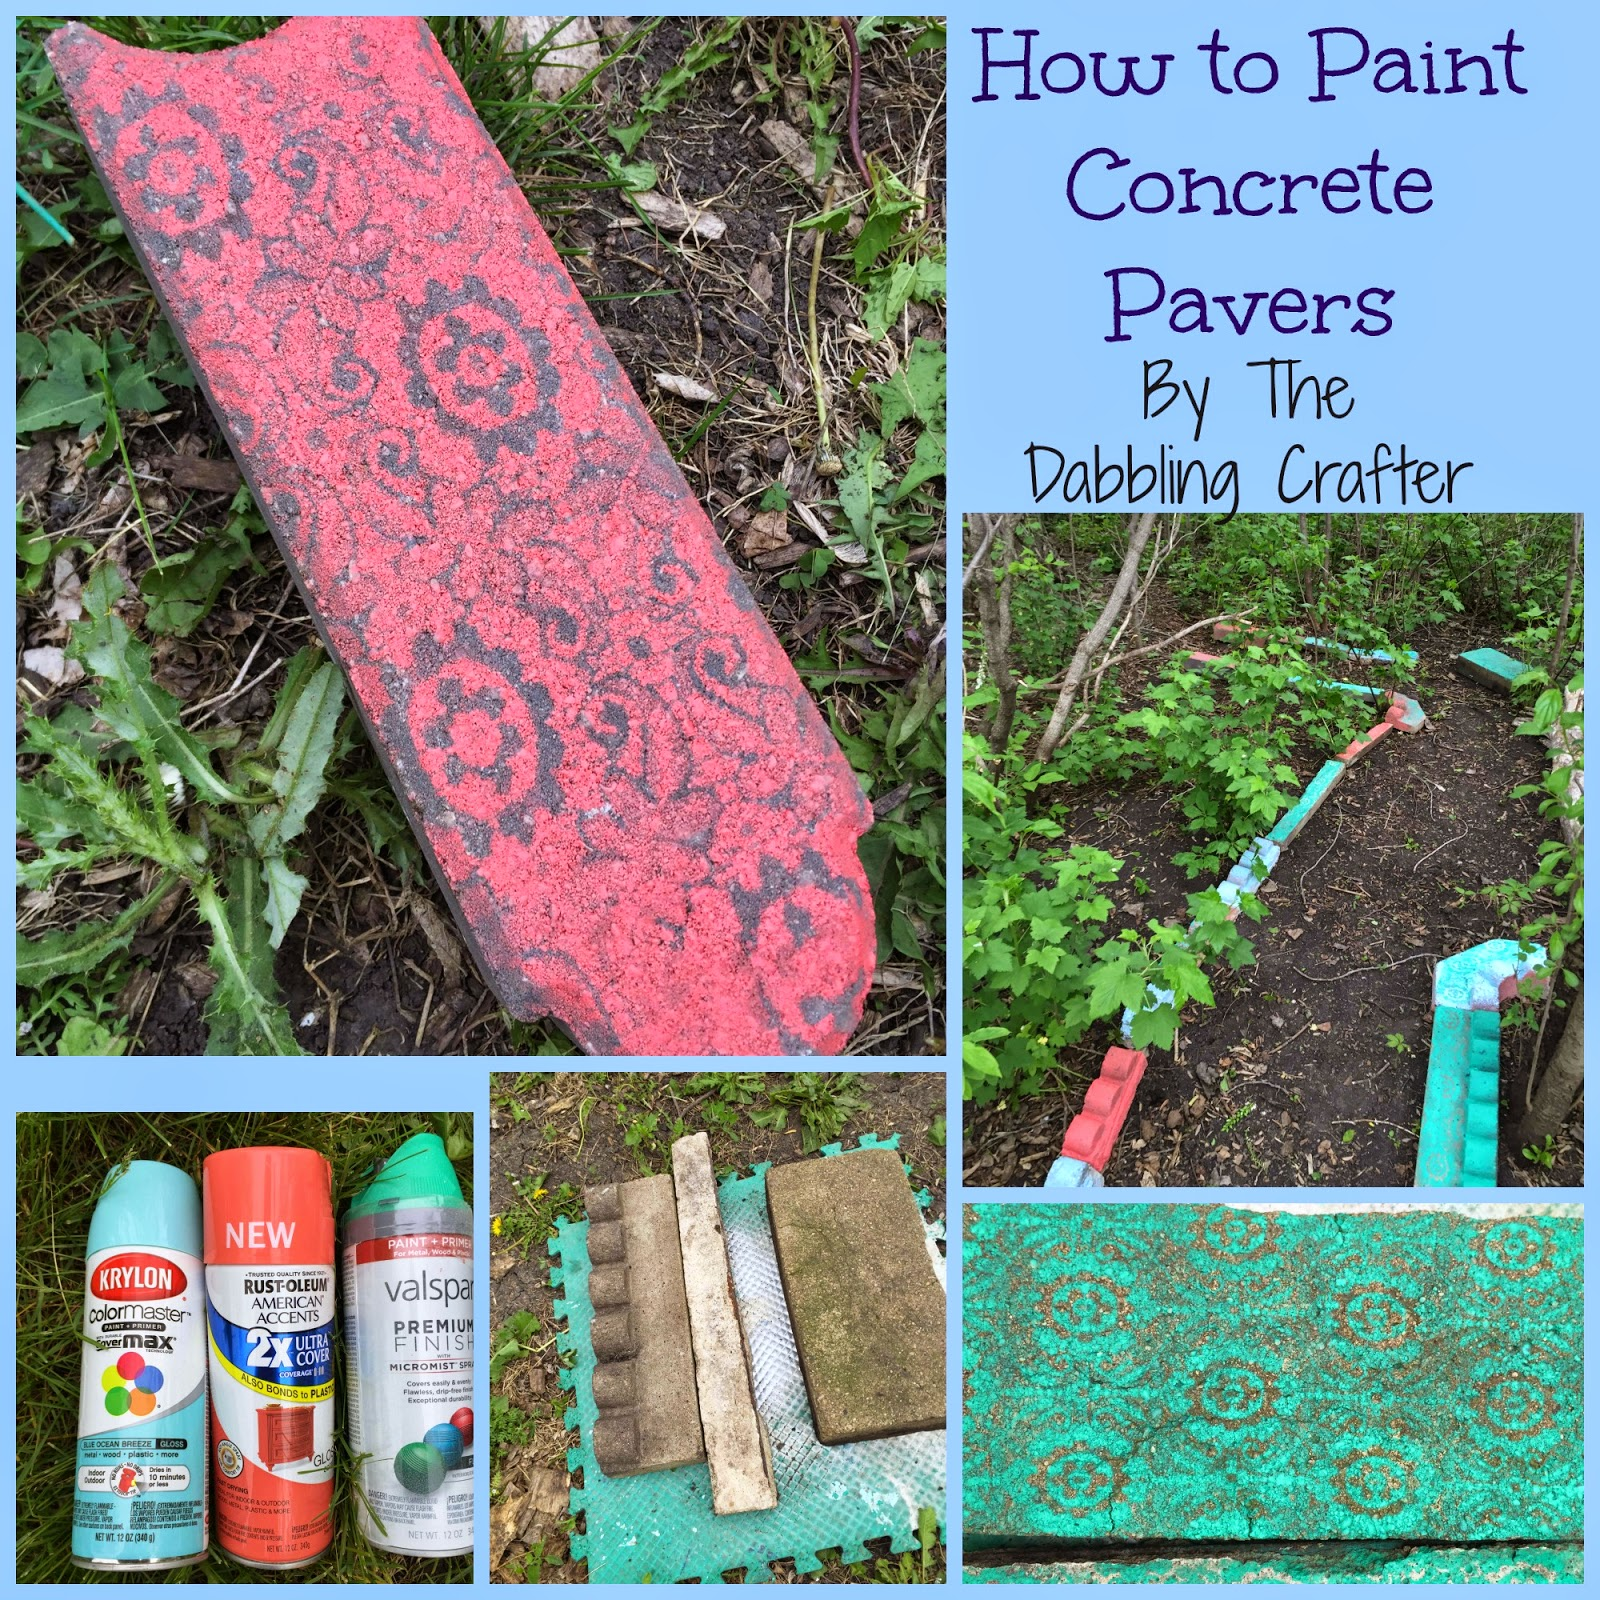 The dabbling crafter diy sunday spray painted pavers for How to clean dirty concrete